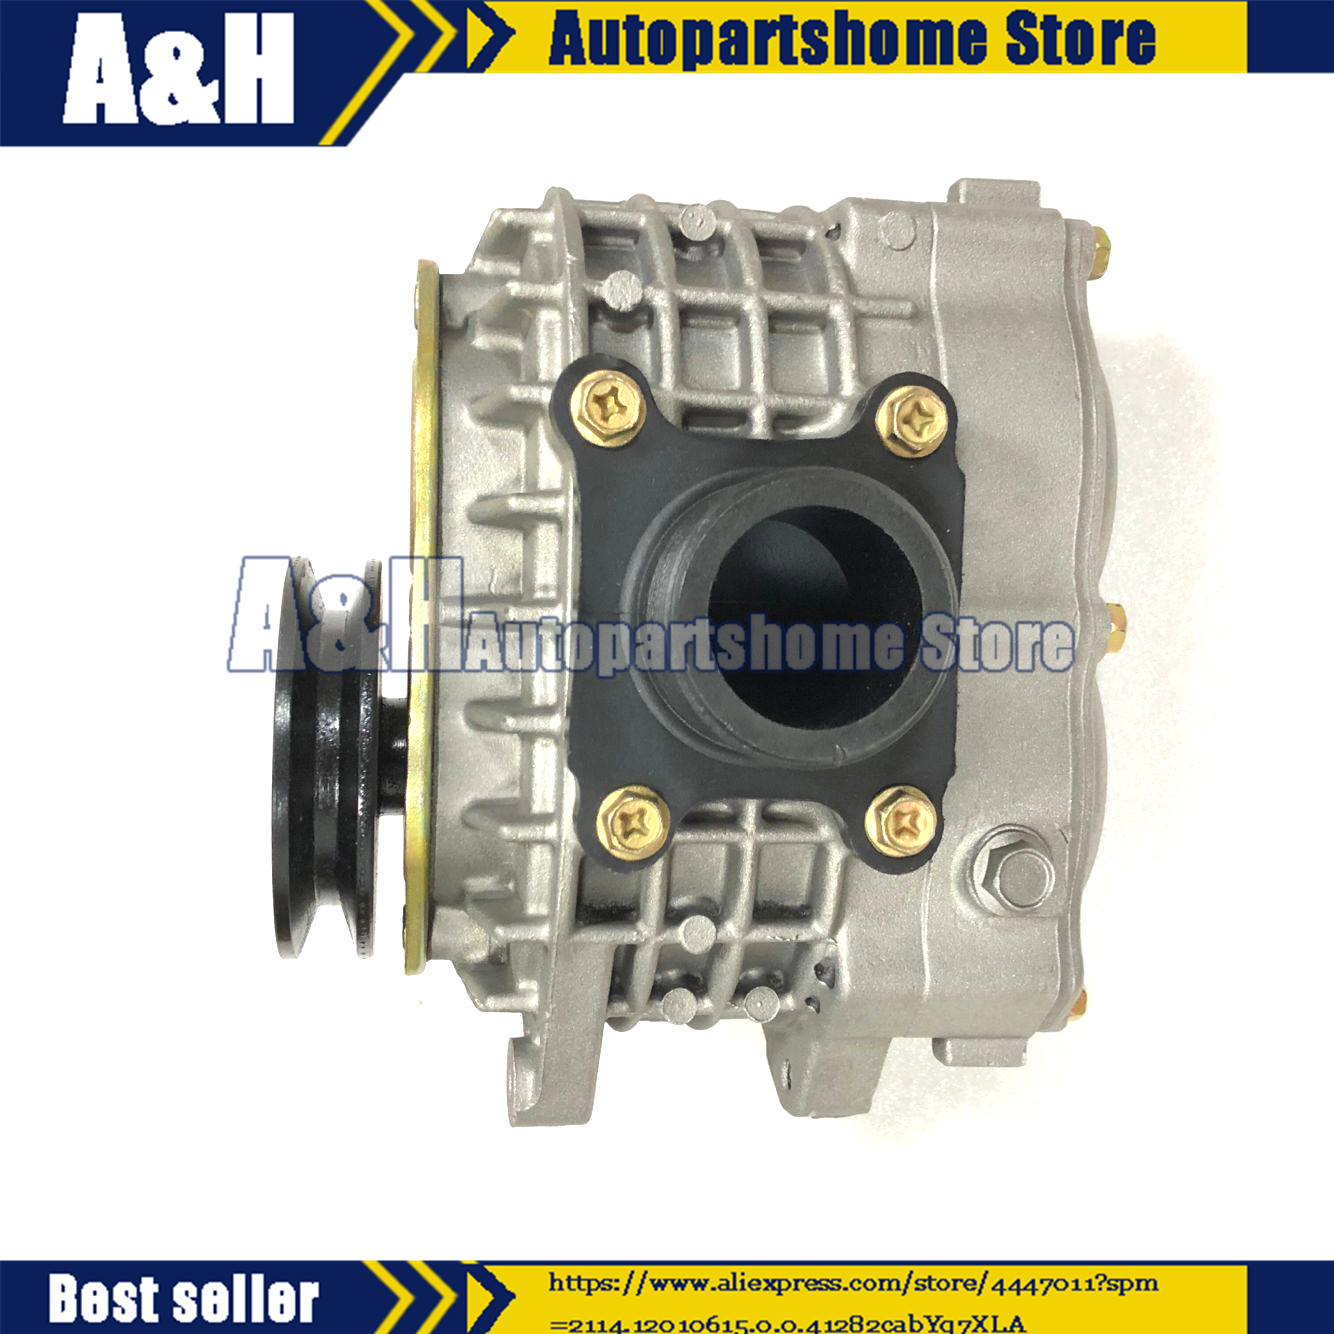 Hearty Remanufactured Amr500 For Auto Roots Supercharger Compressor Blower Booster Mechanical Turbocharger Kompressor Turbine 1.0-2.2l Cheap Sales 50% Back To Search Resultsautomobiles & Motorcycles